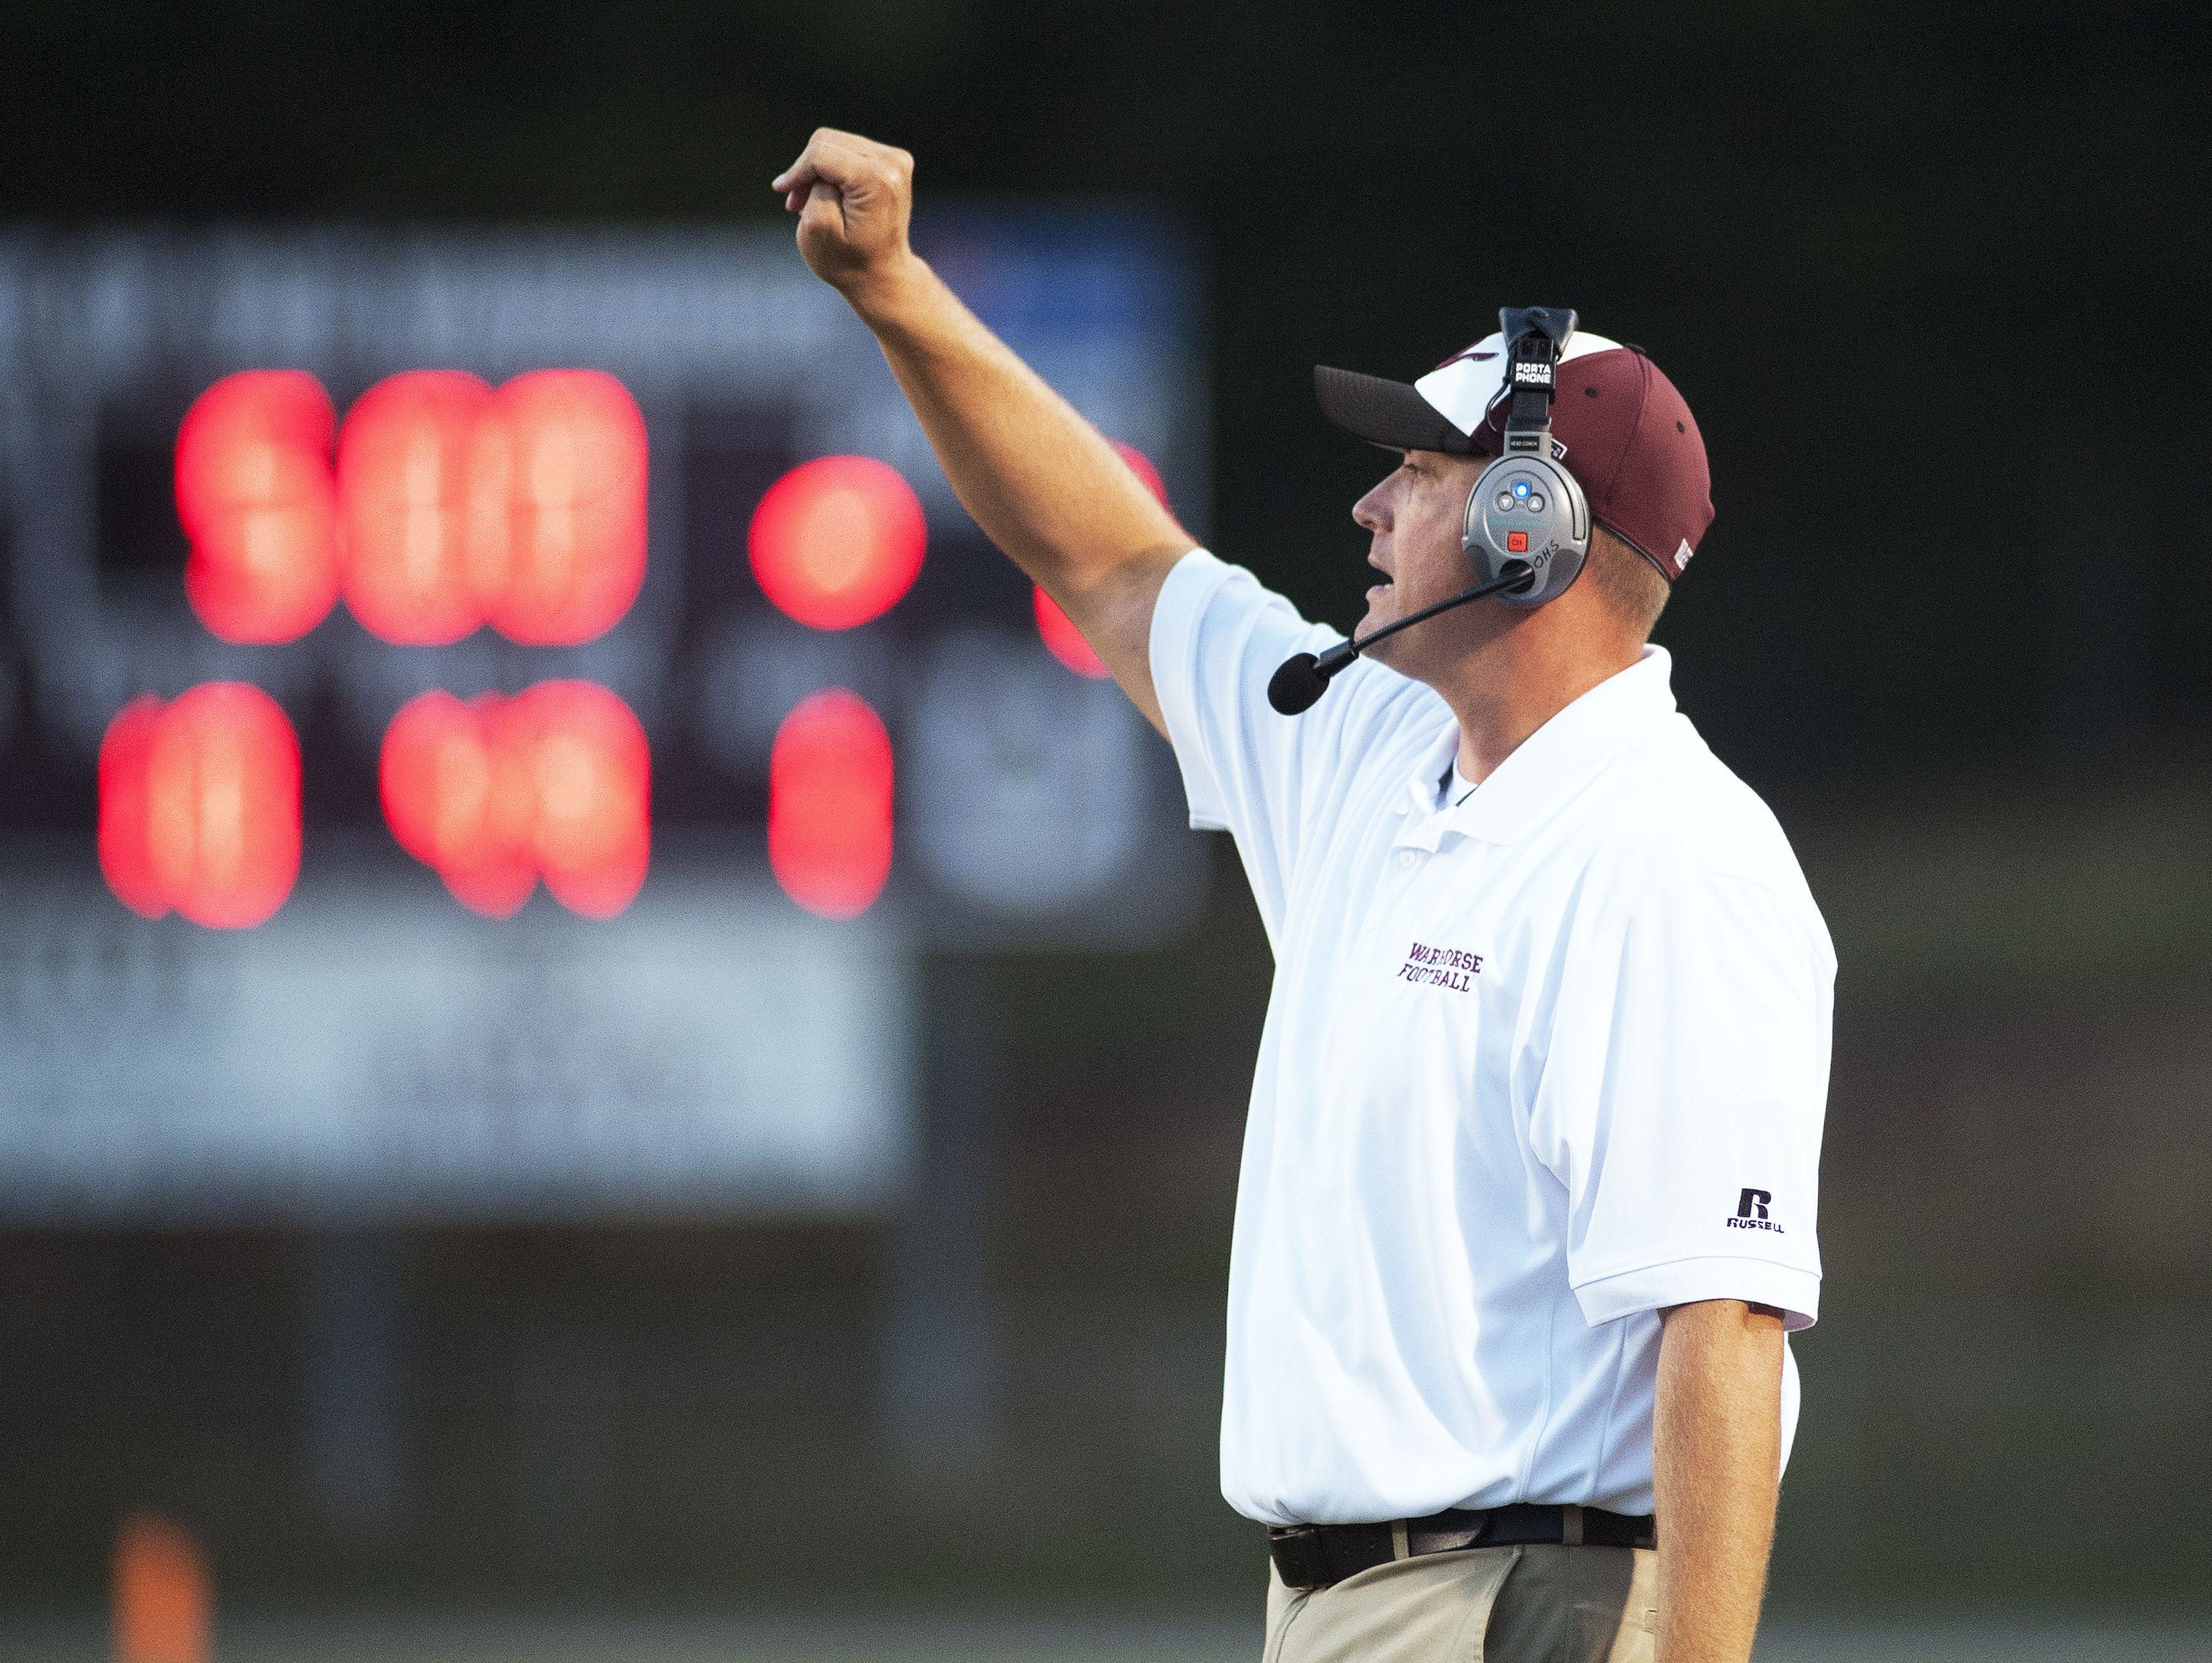 Owen football coach Nathan Padgett won his first game with the Warhorses on Friday at Avery County.